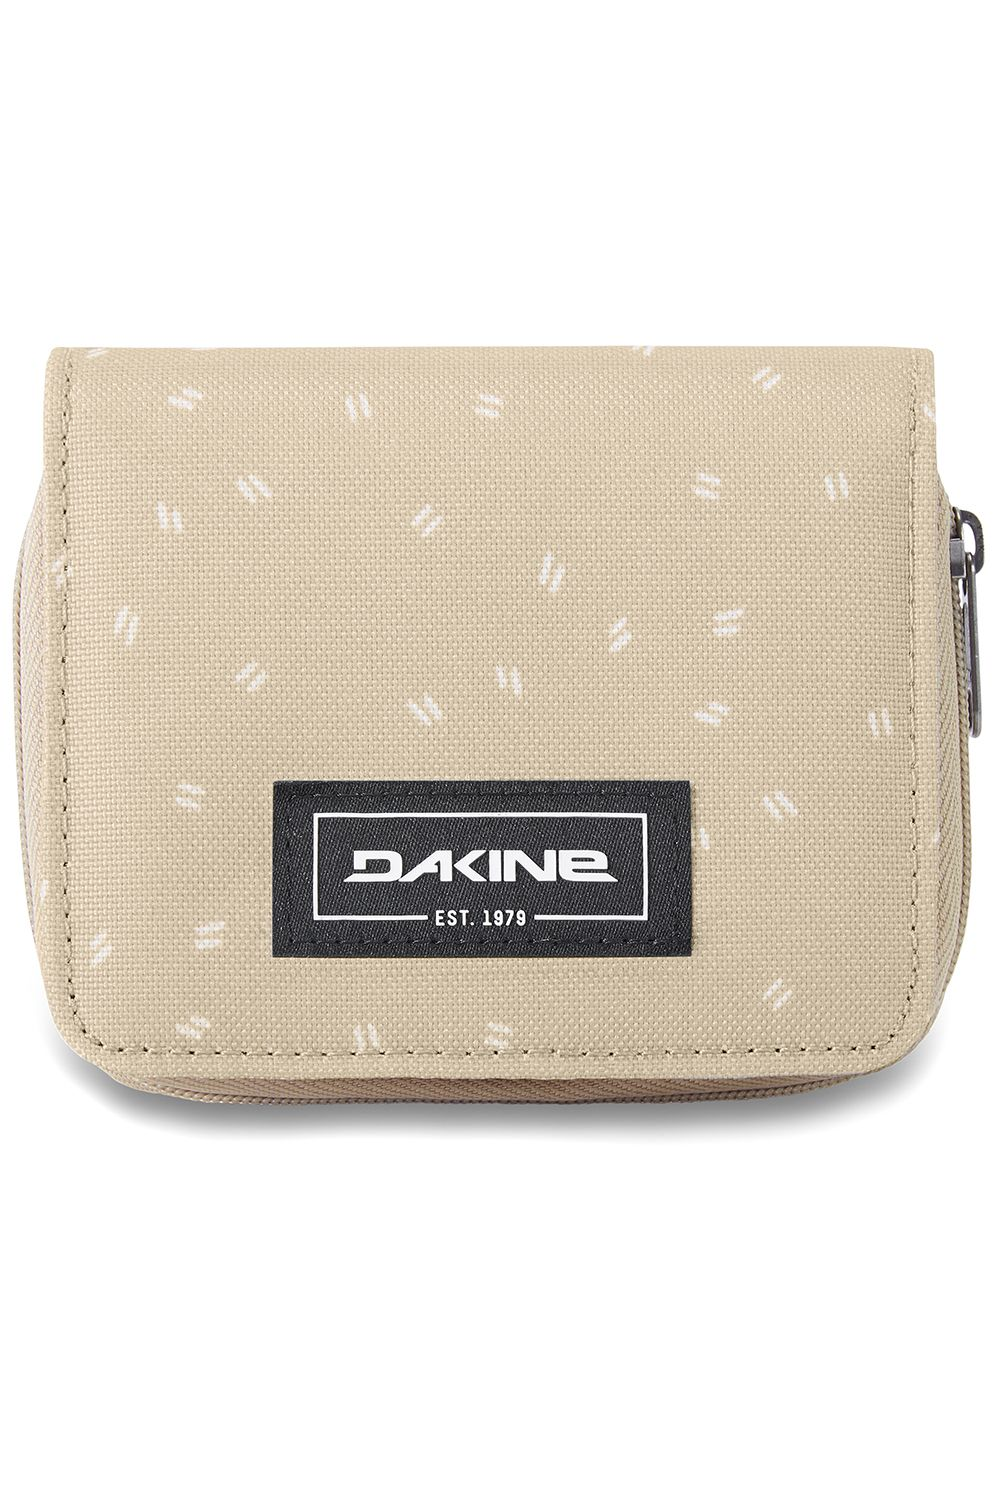 Carteira Dakine SOHO Mini Dash Barley